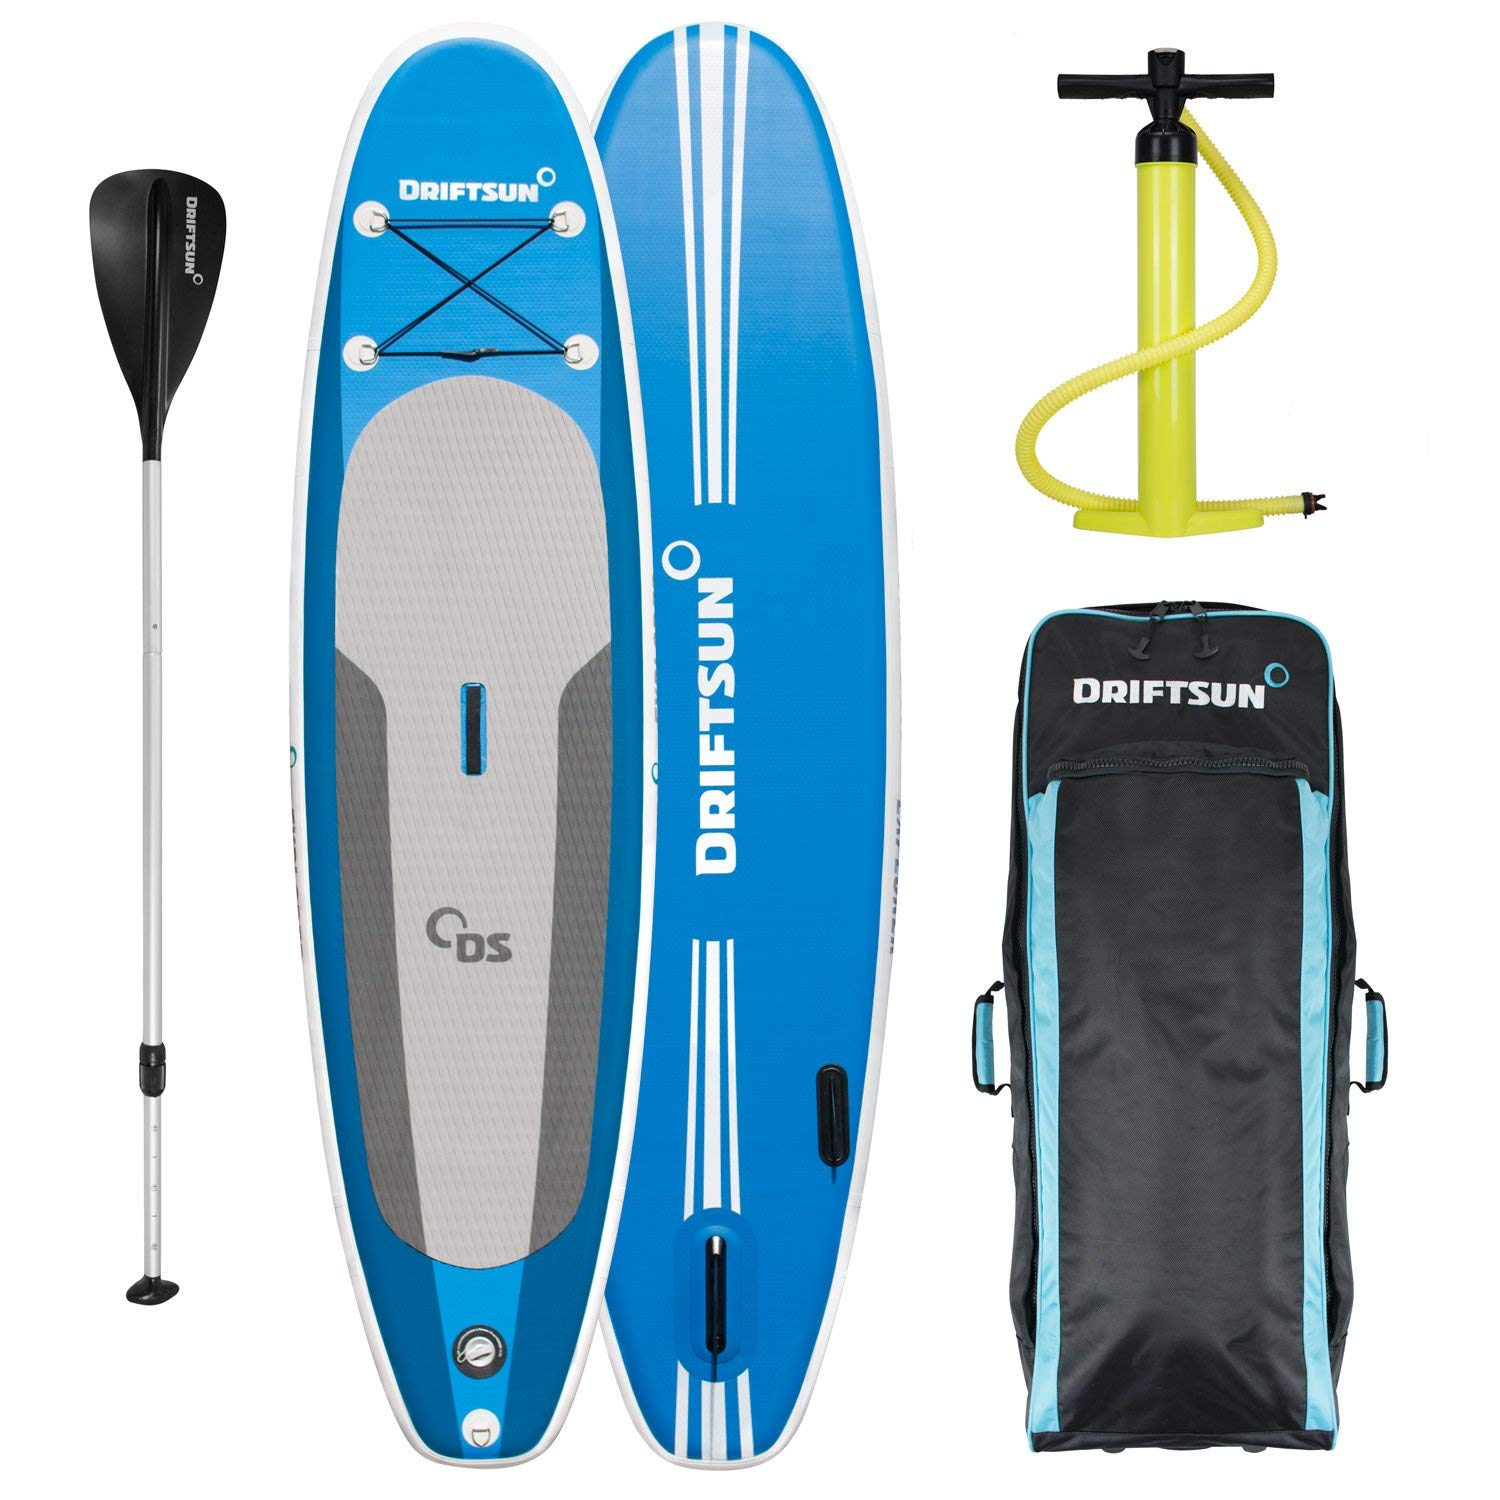 """Driftsun Explorer Ultimate Inflatable Paddleboard Package with Travel Backpack, Adjustable Paddle, Coil Leash - 10' Length 6"""" Inch Thick"""